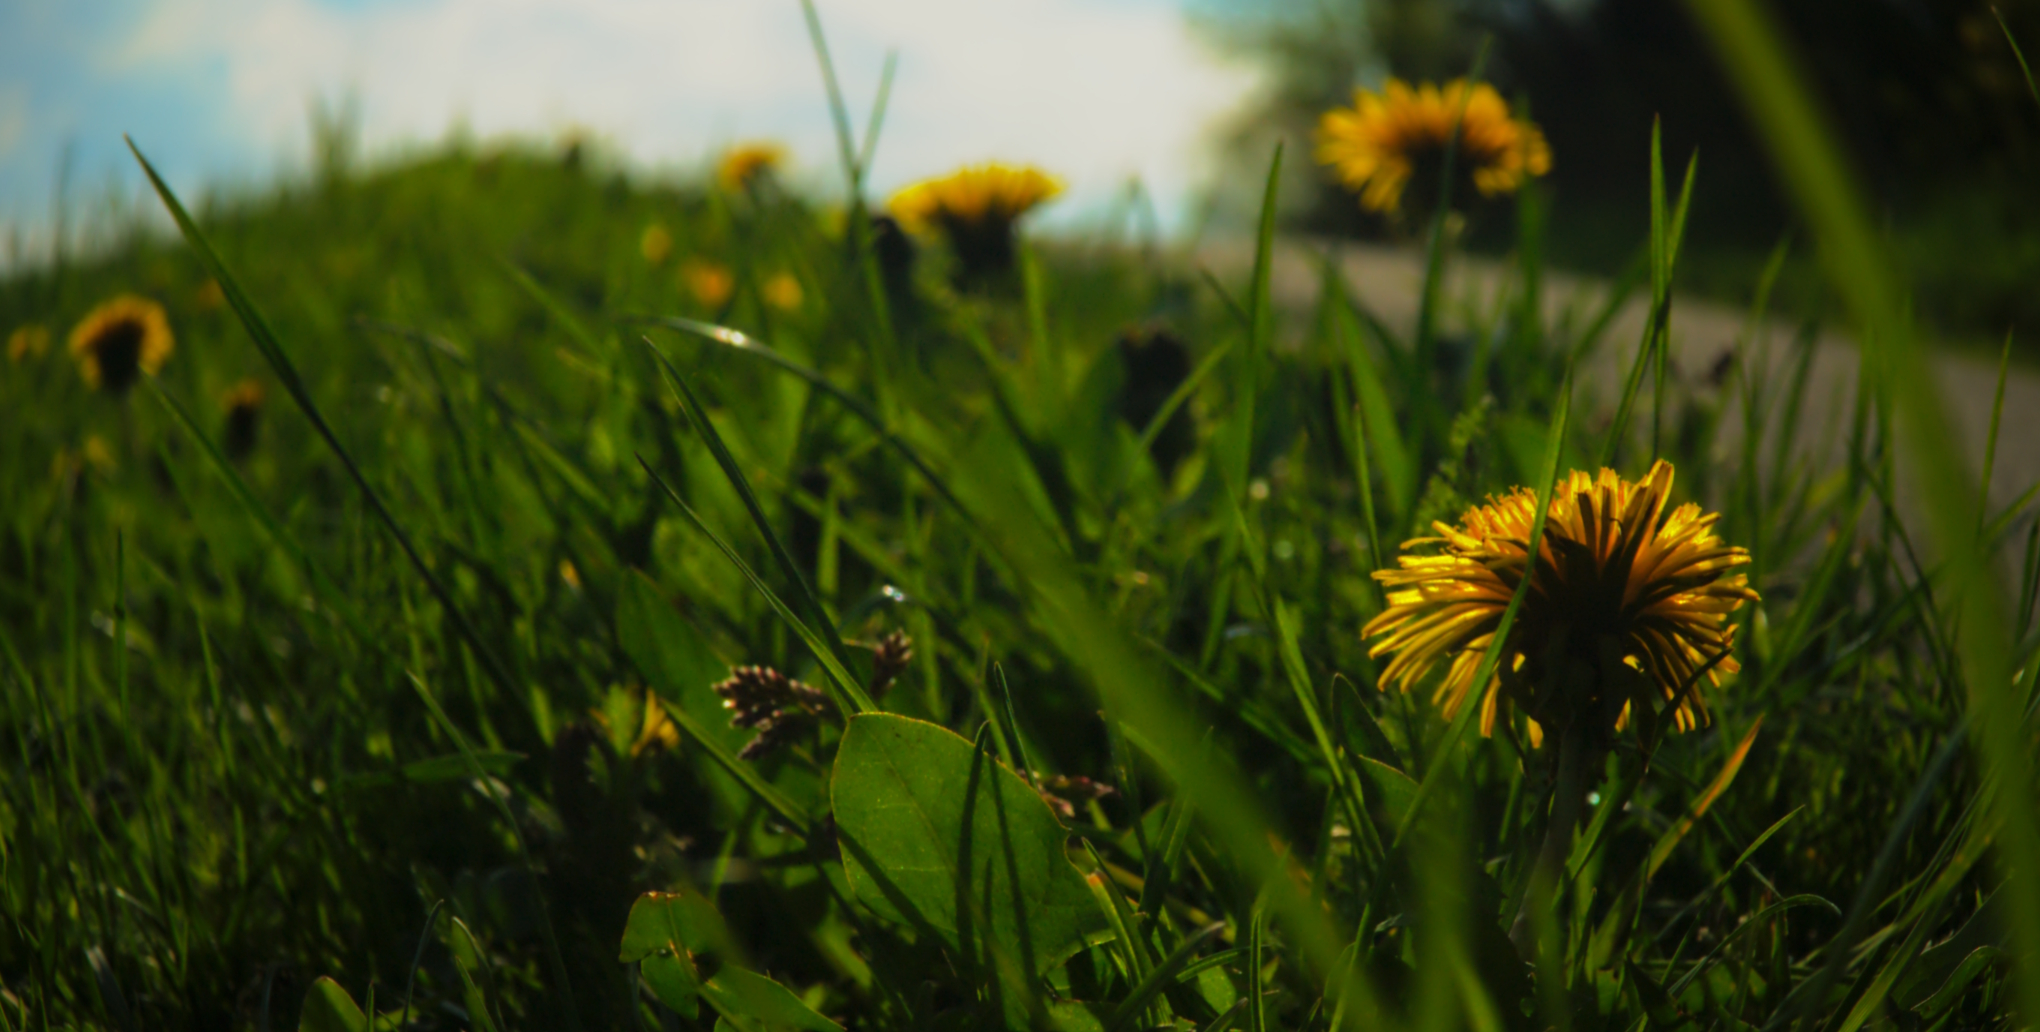 Dandelions 1 by LadislavZajic